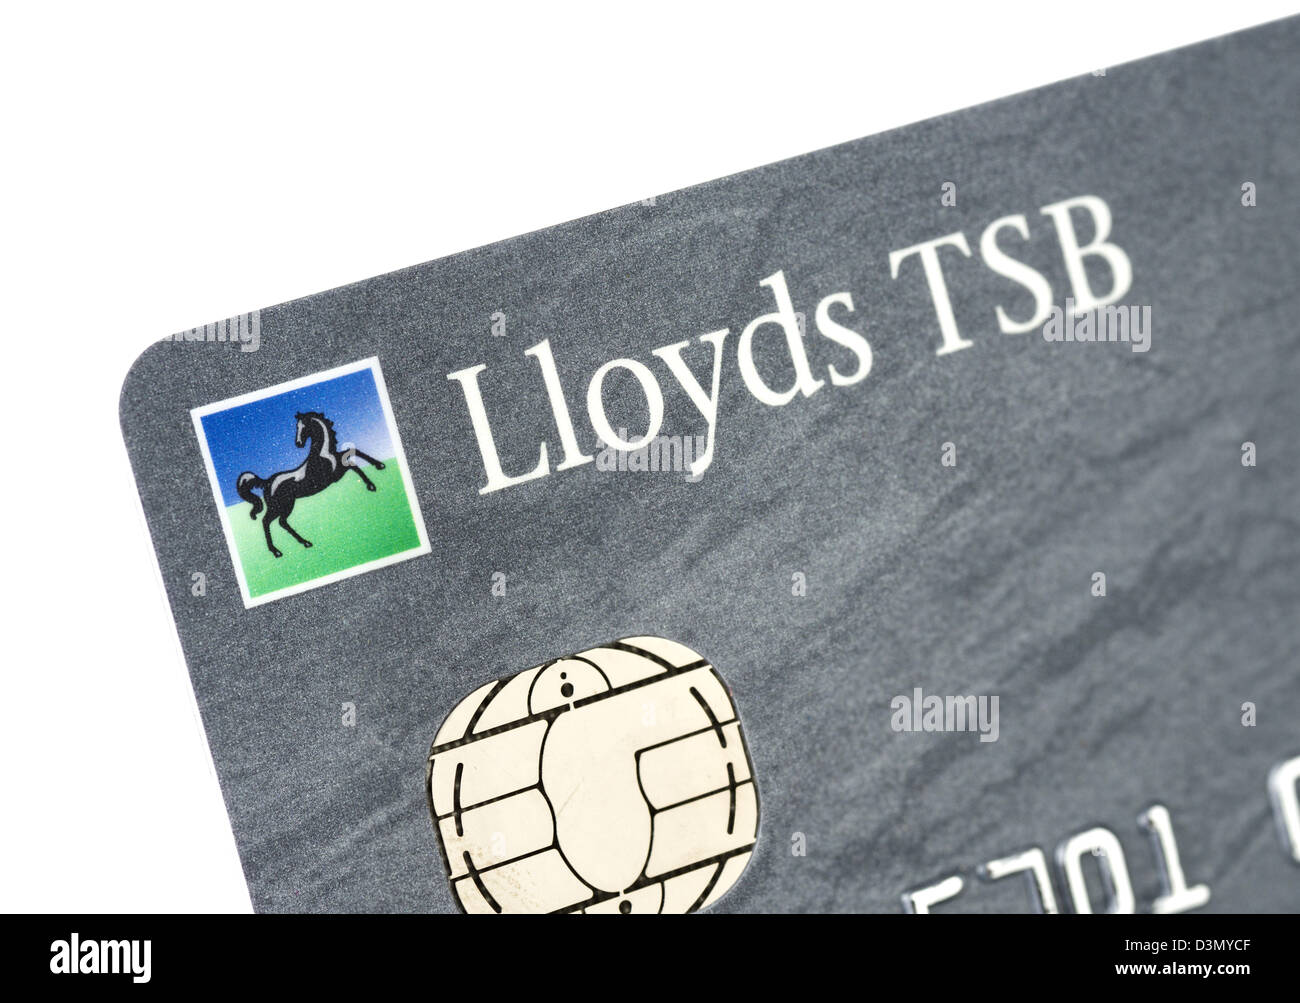 Lloyds bank card stock photos lloyds bank card stock images alamy lloyds tsb bank credit card issued in the uk stock image reheart Choice Image